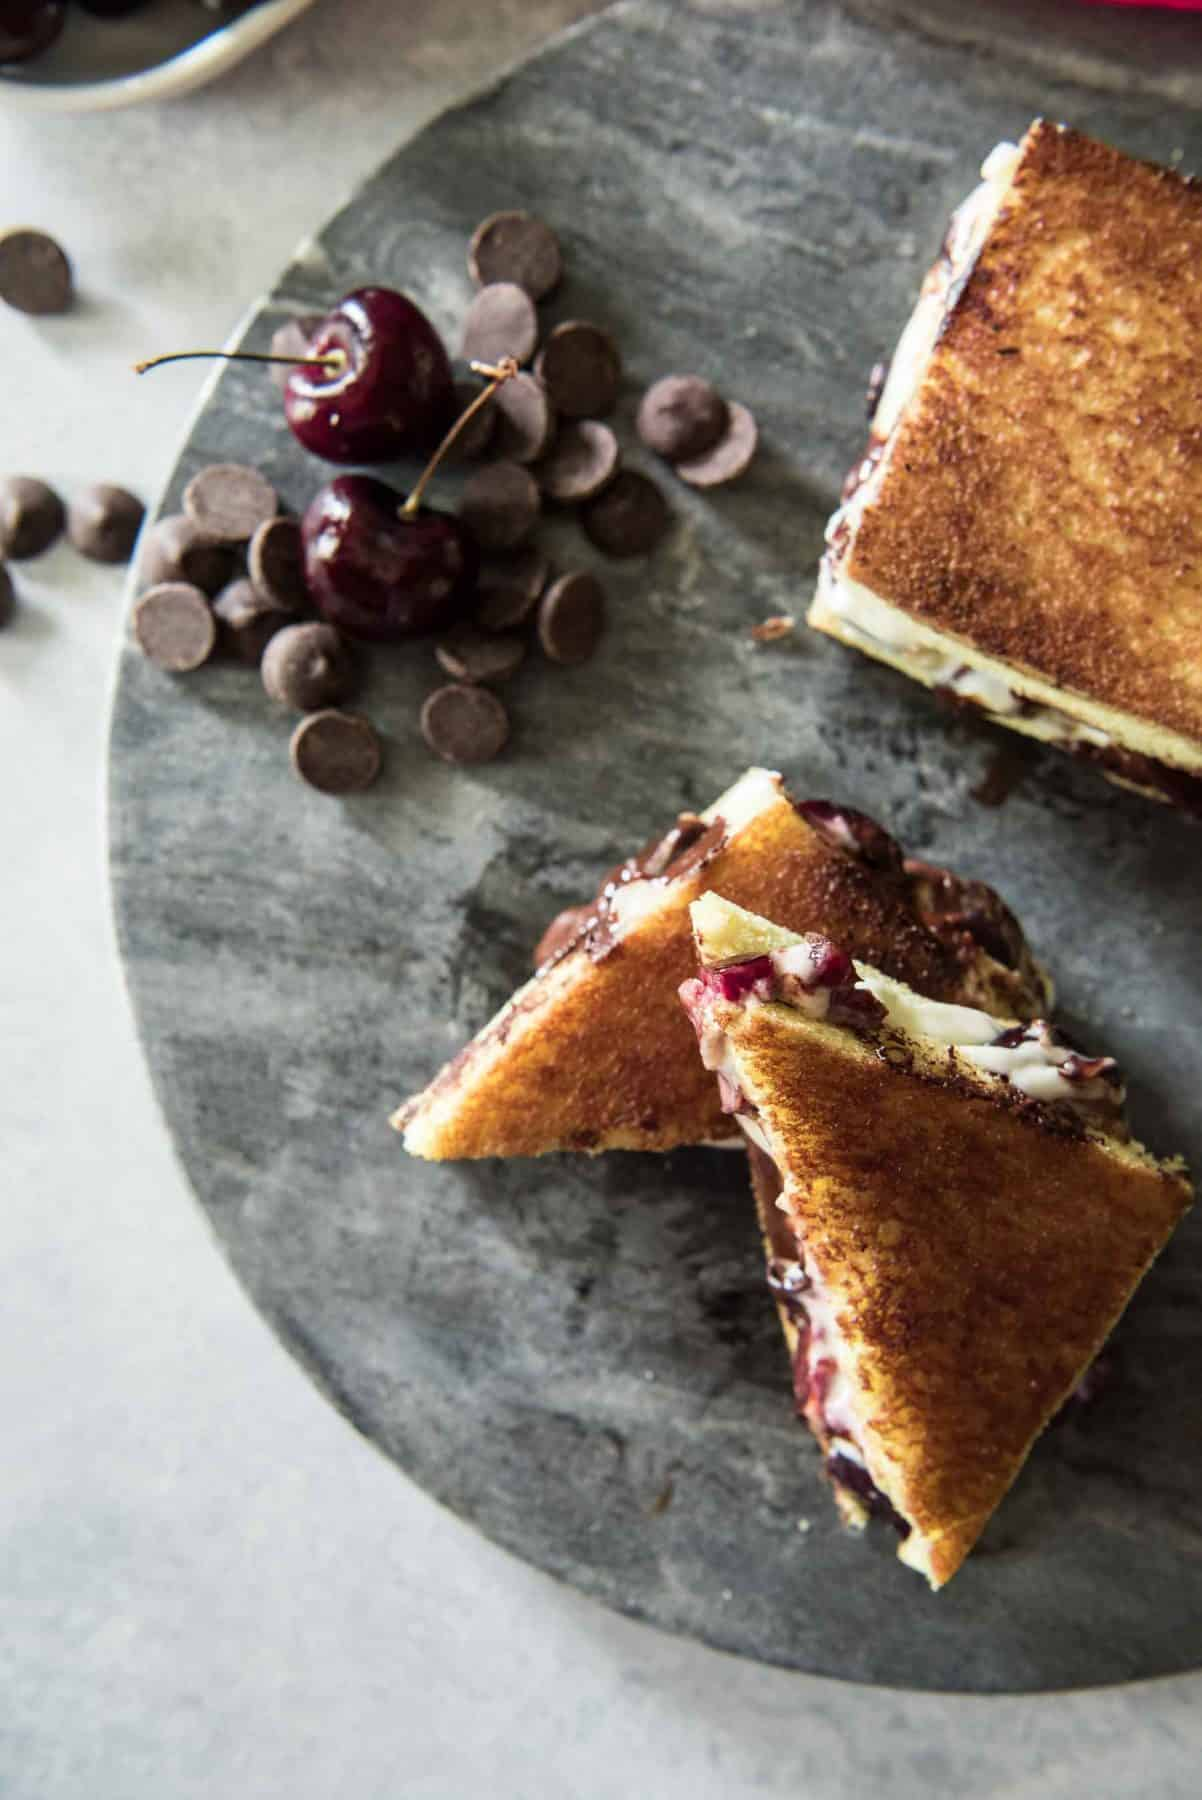 Prepare to appreciate sandwiches in a whole new way with this Dark Chocolate Cherry Dessert Grilled Cheese! Fresh bing cherries, sweetened Mascarpone, and luscious dark chocolate melted on brioche make this a sandwich destined for your dessert menu!